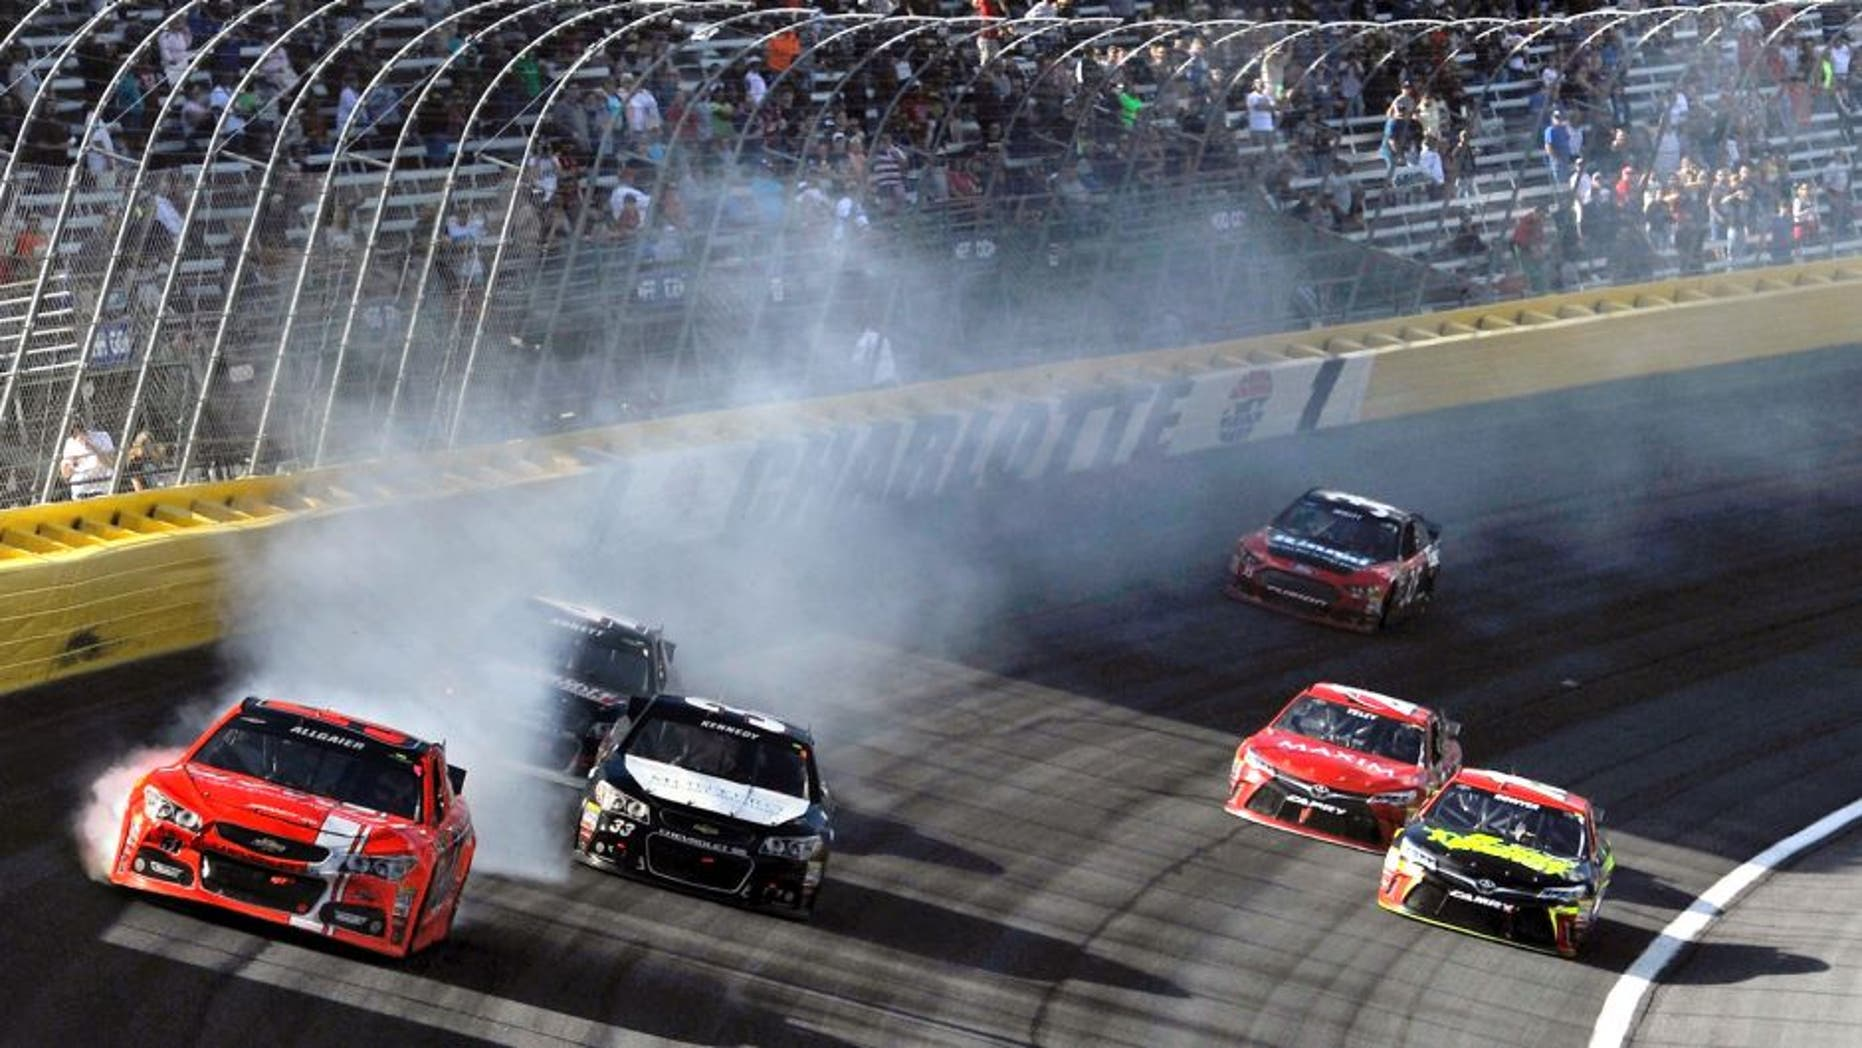 CHARLOTTE, NC - OCTOBER 11: Justin Allgaier, driver of the #51 Brandt Chevrolet, is involved in an on-track incident during the NASCAR Sprint Cup Series Bank of America 500 at Charlotte Motor Speedway on October 11, 2015 in Charlotte, North Carolina. (Photo by Jared C. Tilton/NASCAR via Getty Images)